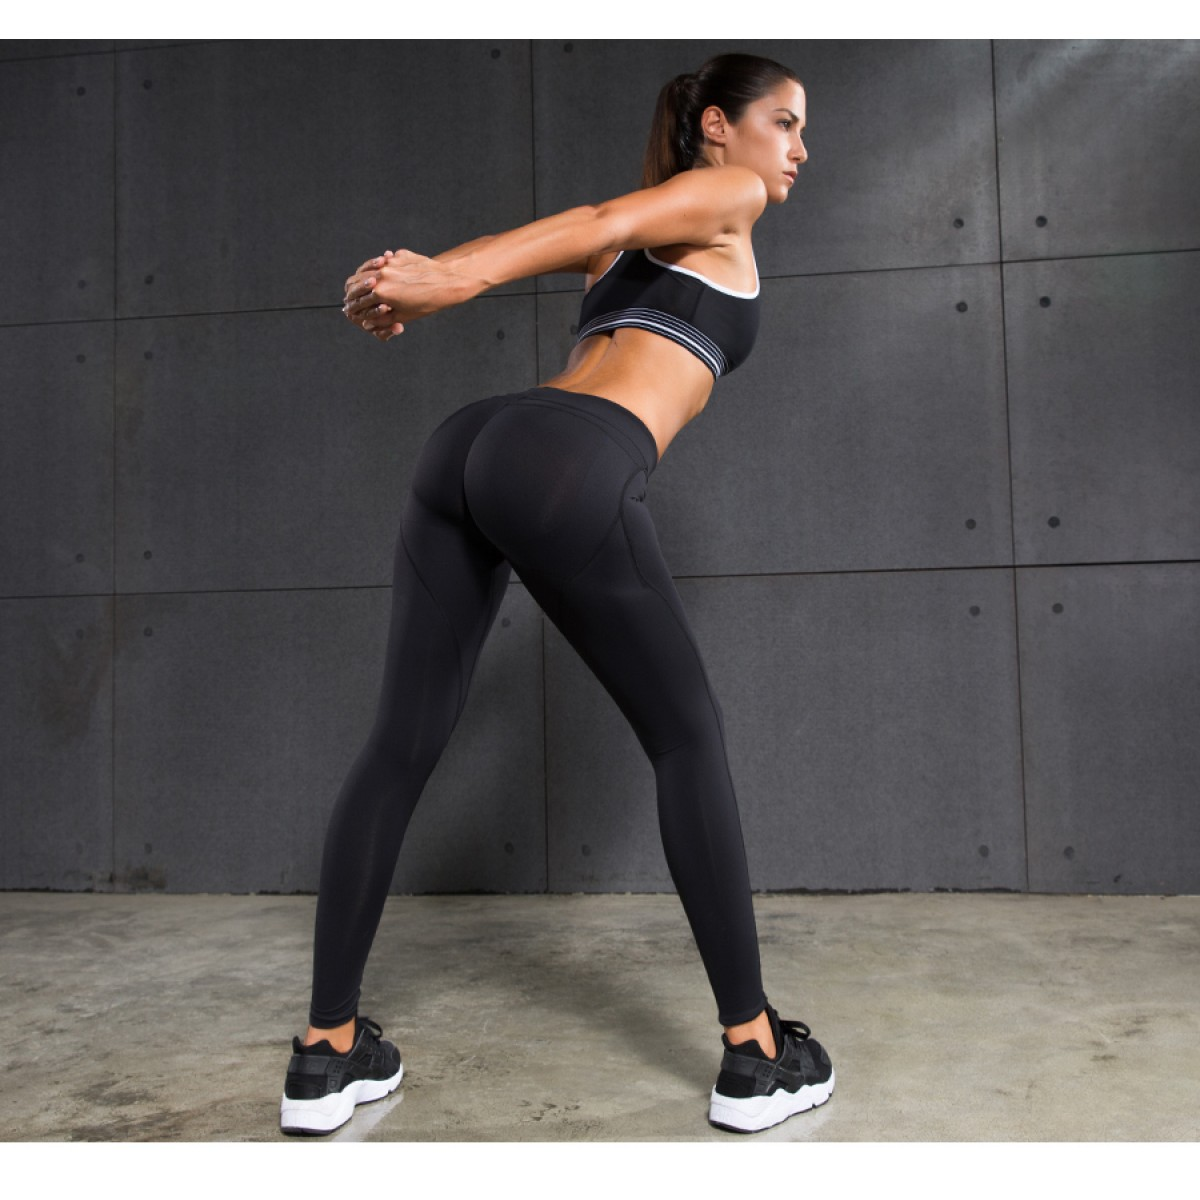 MID-RISE Women s Shaping up effect Running Yoga Gym Tights Fitness Hip  compression Pants 719da58ca5a